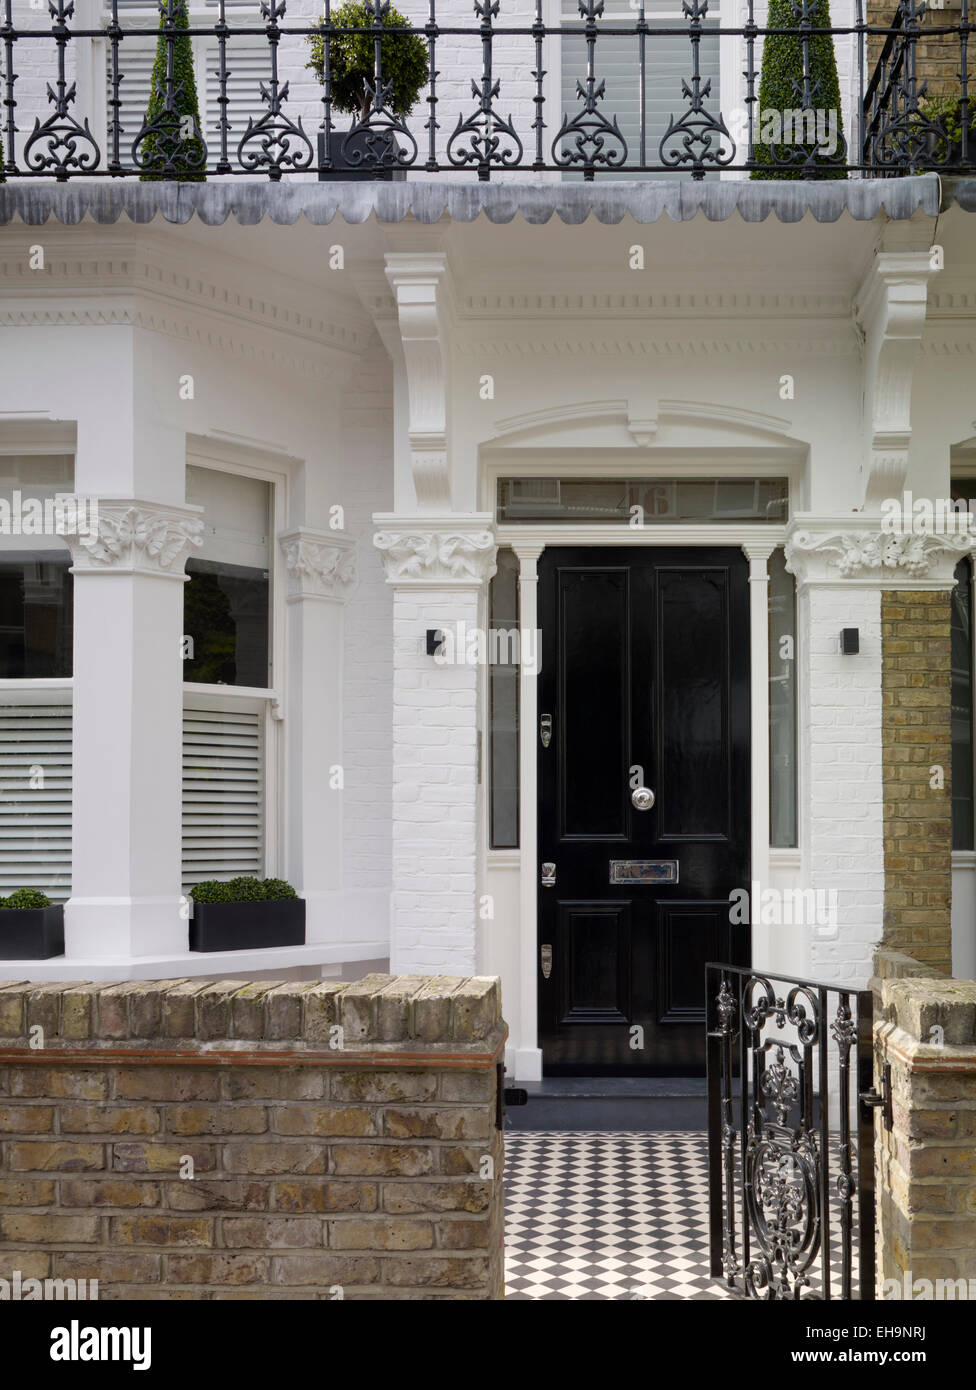 Exterior Open Ornate Victorian Metal Gate To Front Door With Moulded  Plaster In Chesilton Road Home, UK